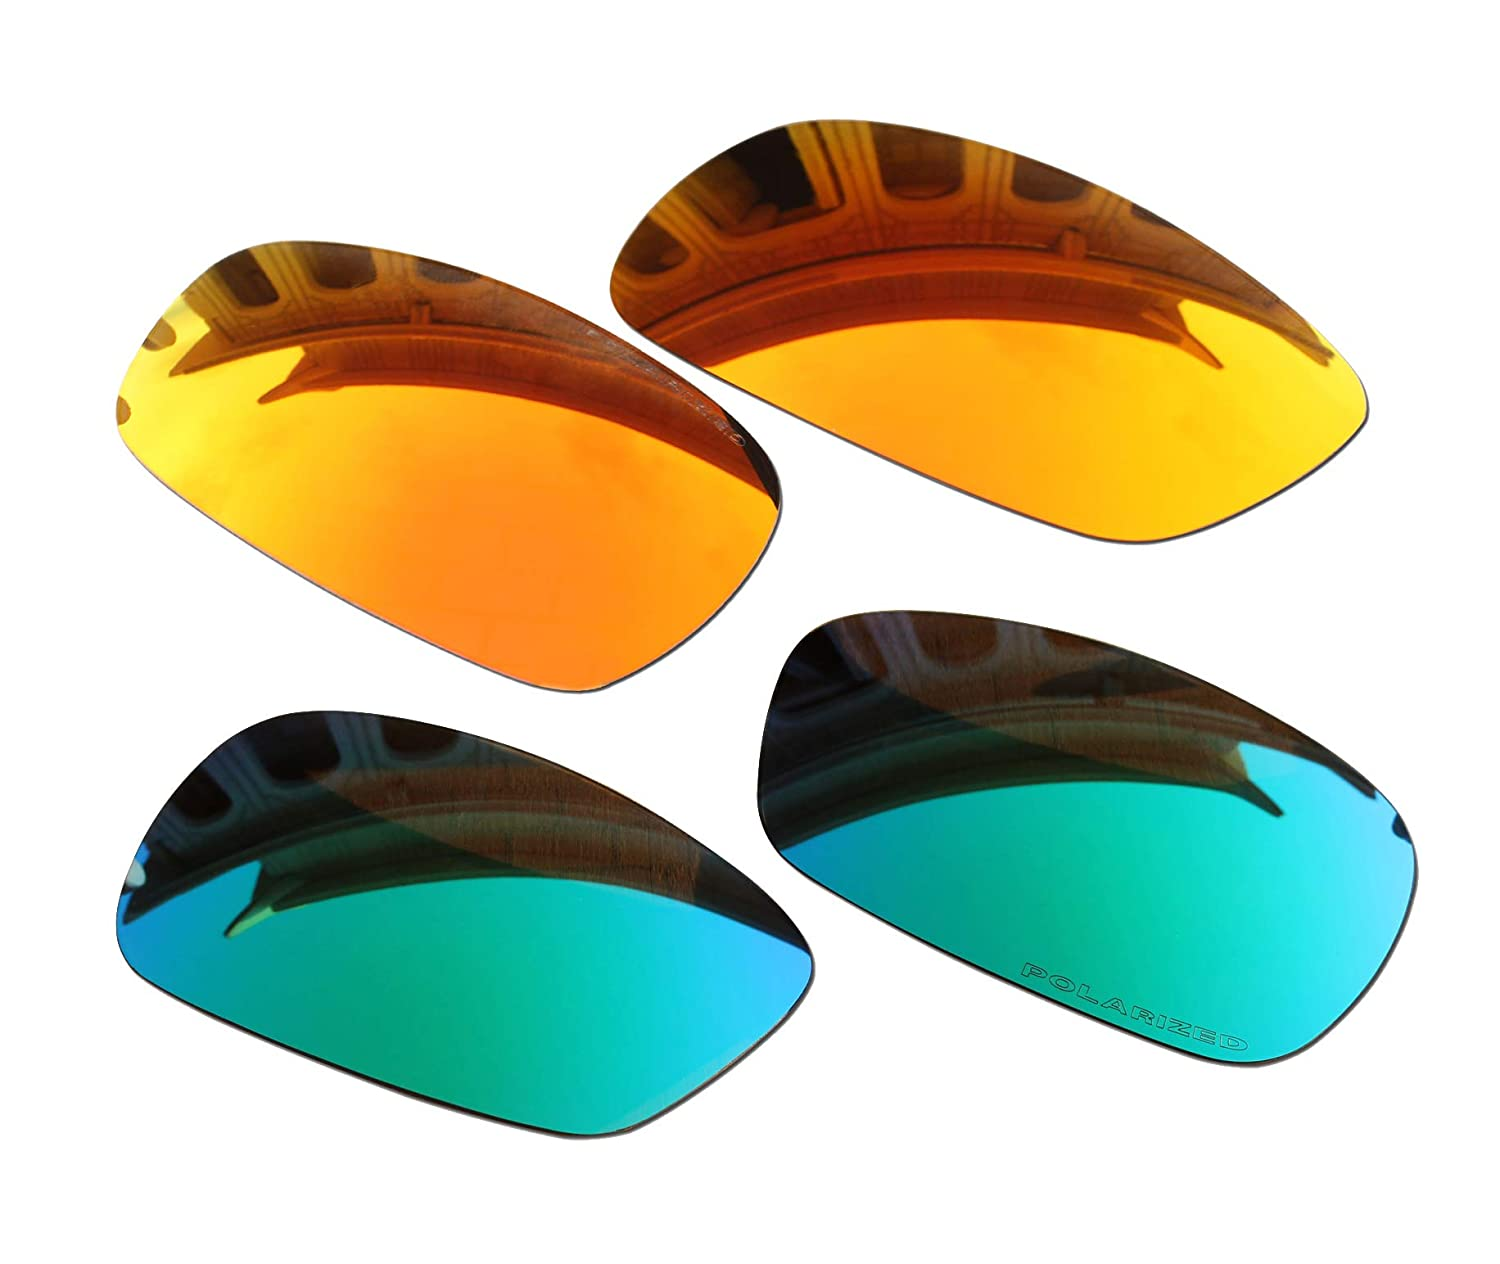 1bd59d5aec Amazon.com   2 Pairs BVANQ Polarized Lenses Replacement Fire Red   Green  for Oakley Crosshair 2.0 (OO4044) Sunglasses   Sports   Outdoors